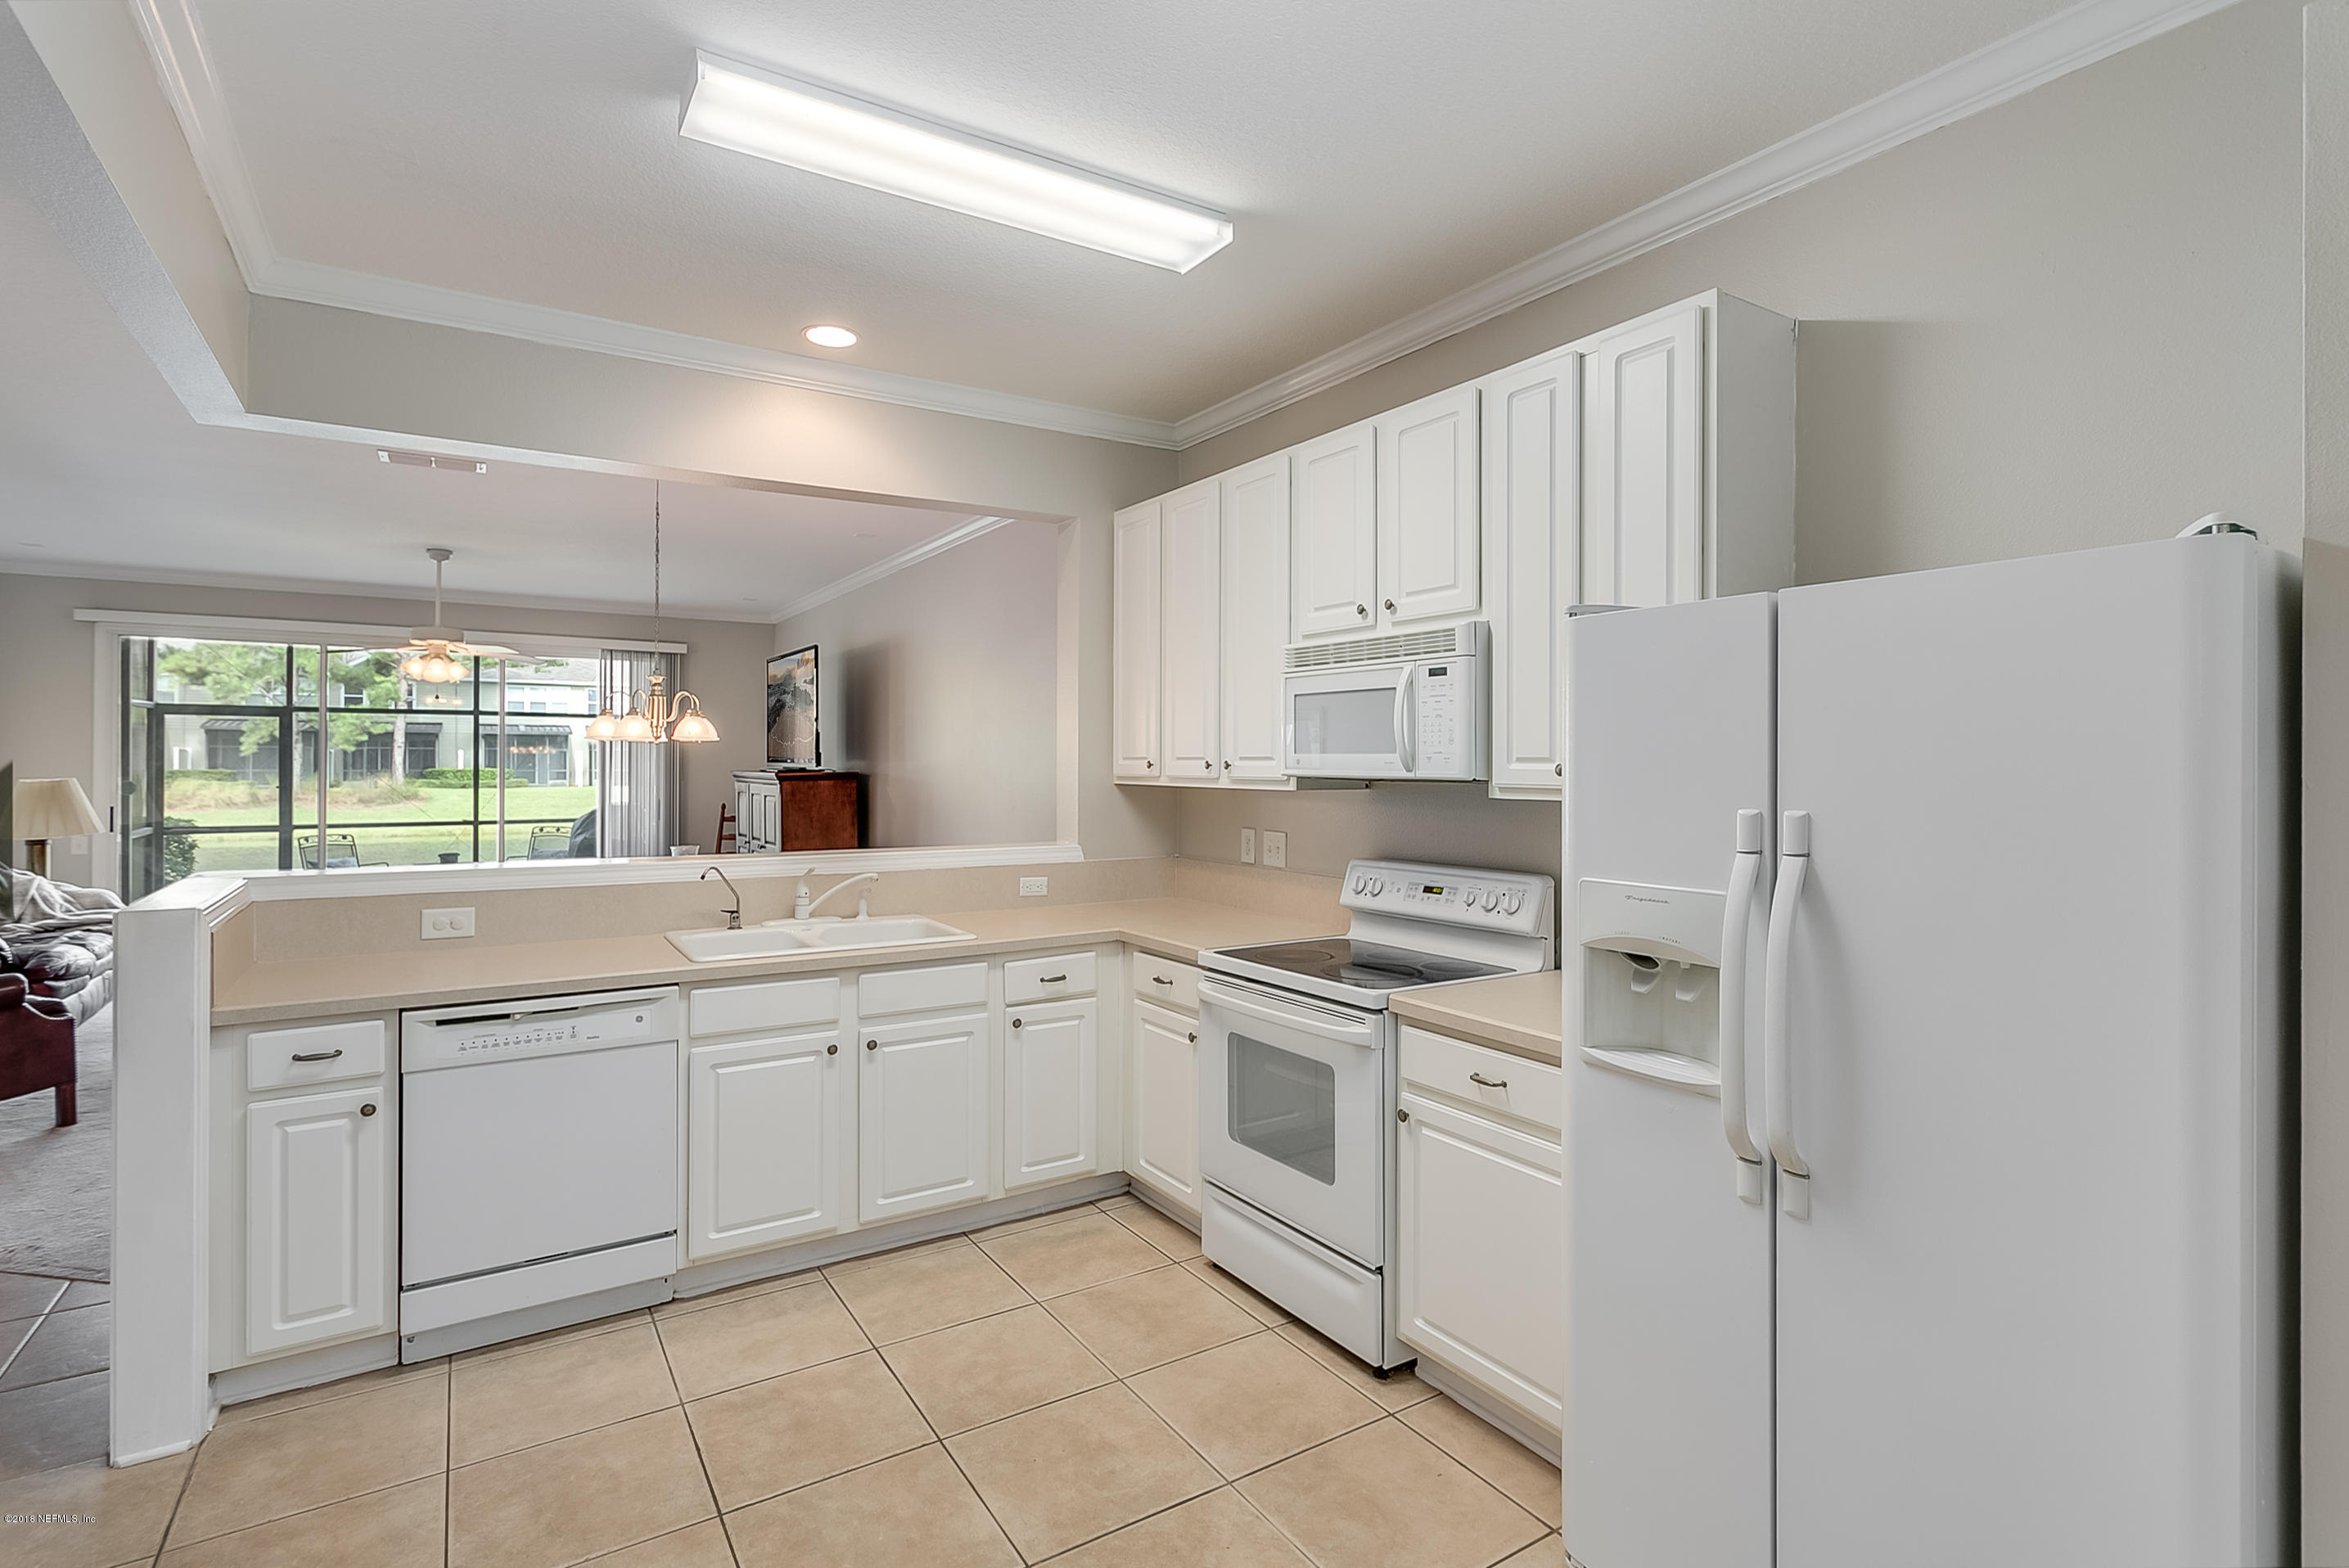 7562 RED CRANE, JACKSONVILLE, FLORIDA 32256, 3 Bedrooms Bedrooms, ,2 BathroomsBathrooms,Residential - townhome,For sale,RED CRANE,953896